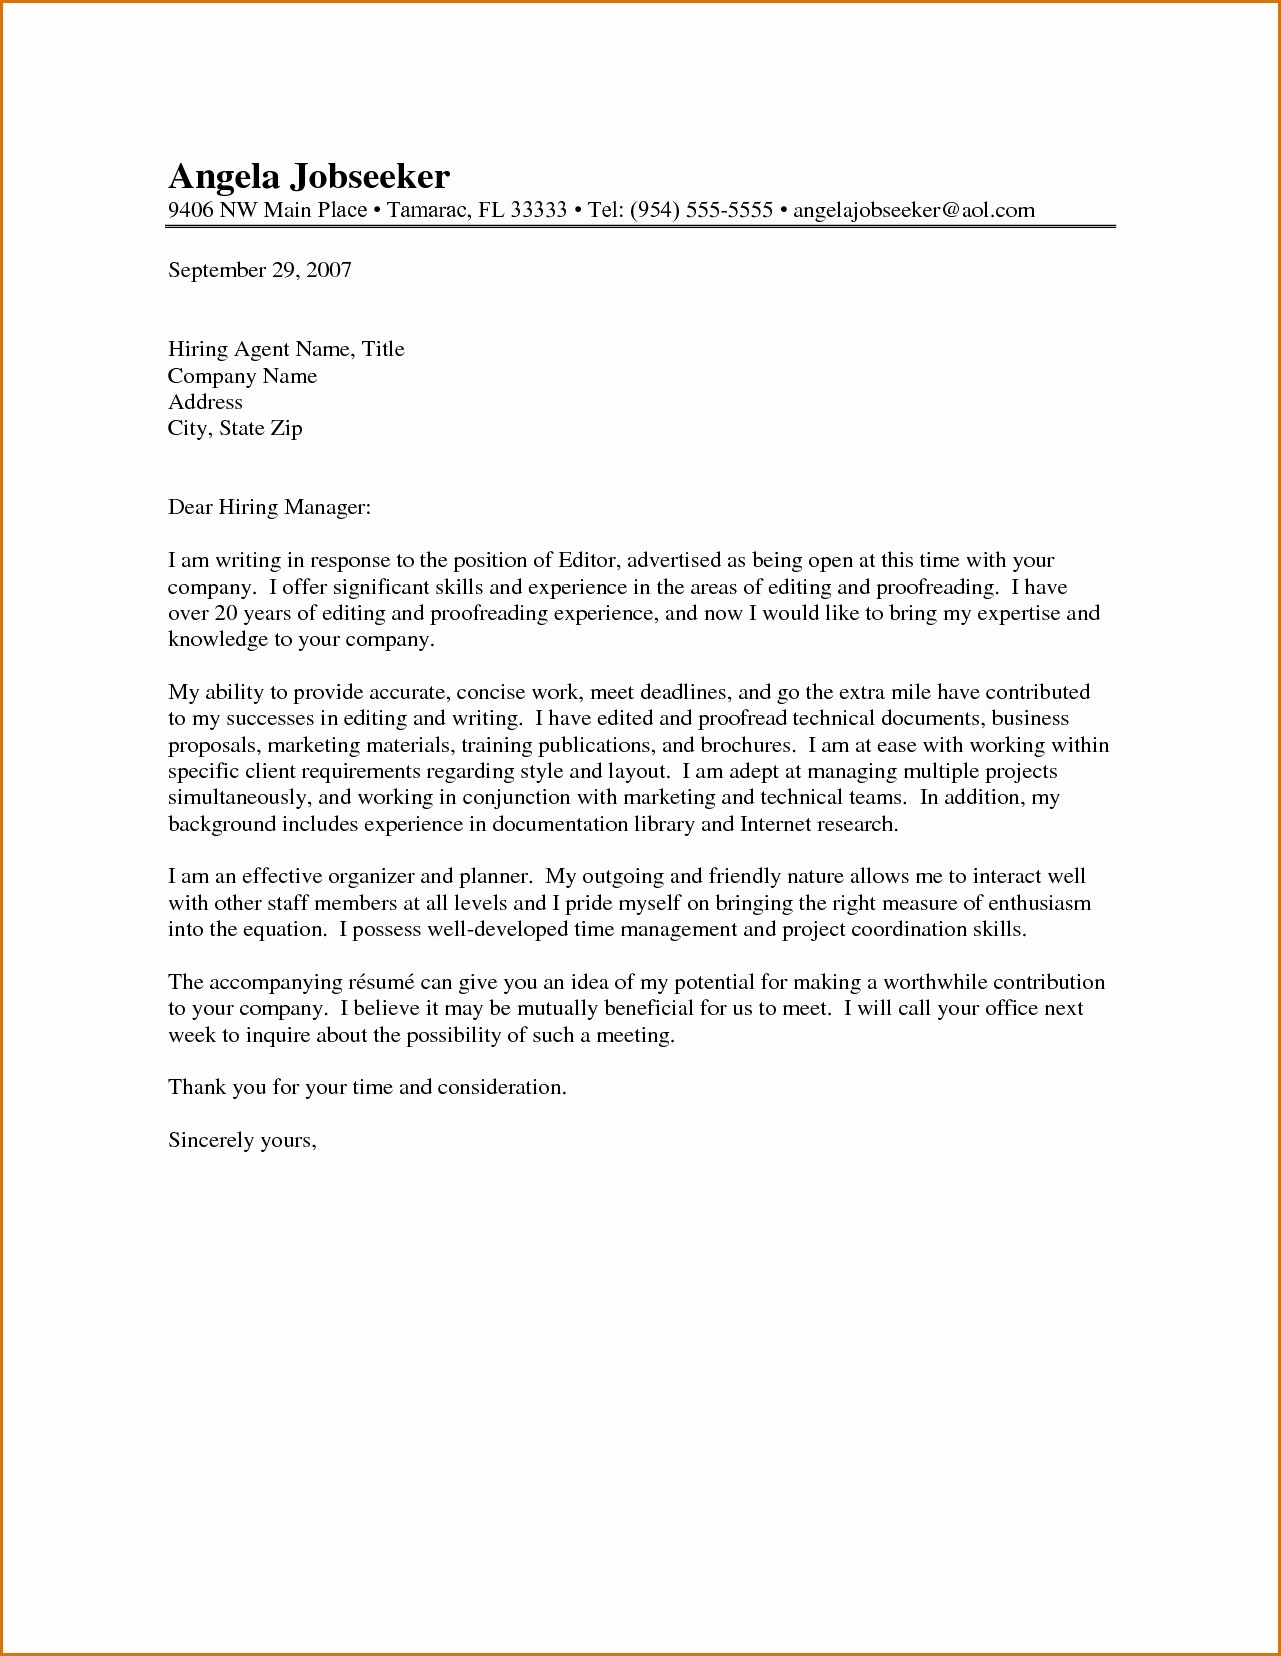 Letter to the Editor Templates Fresh Editing Letters to the Editor